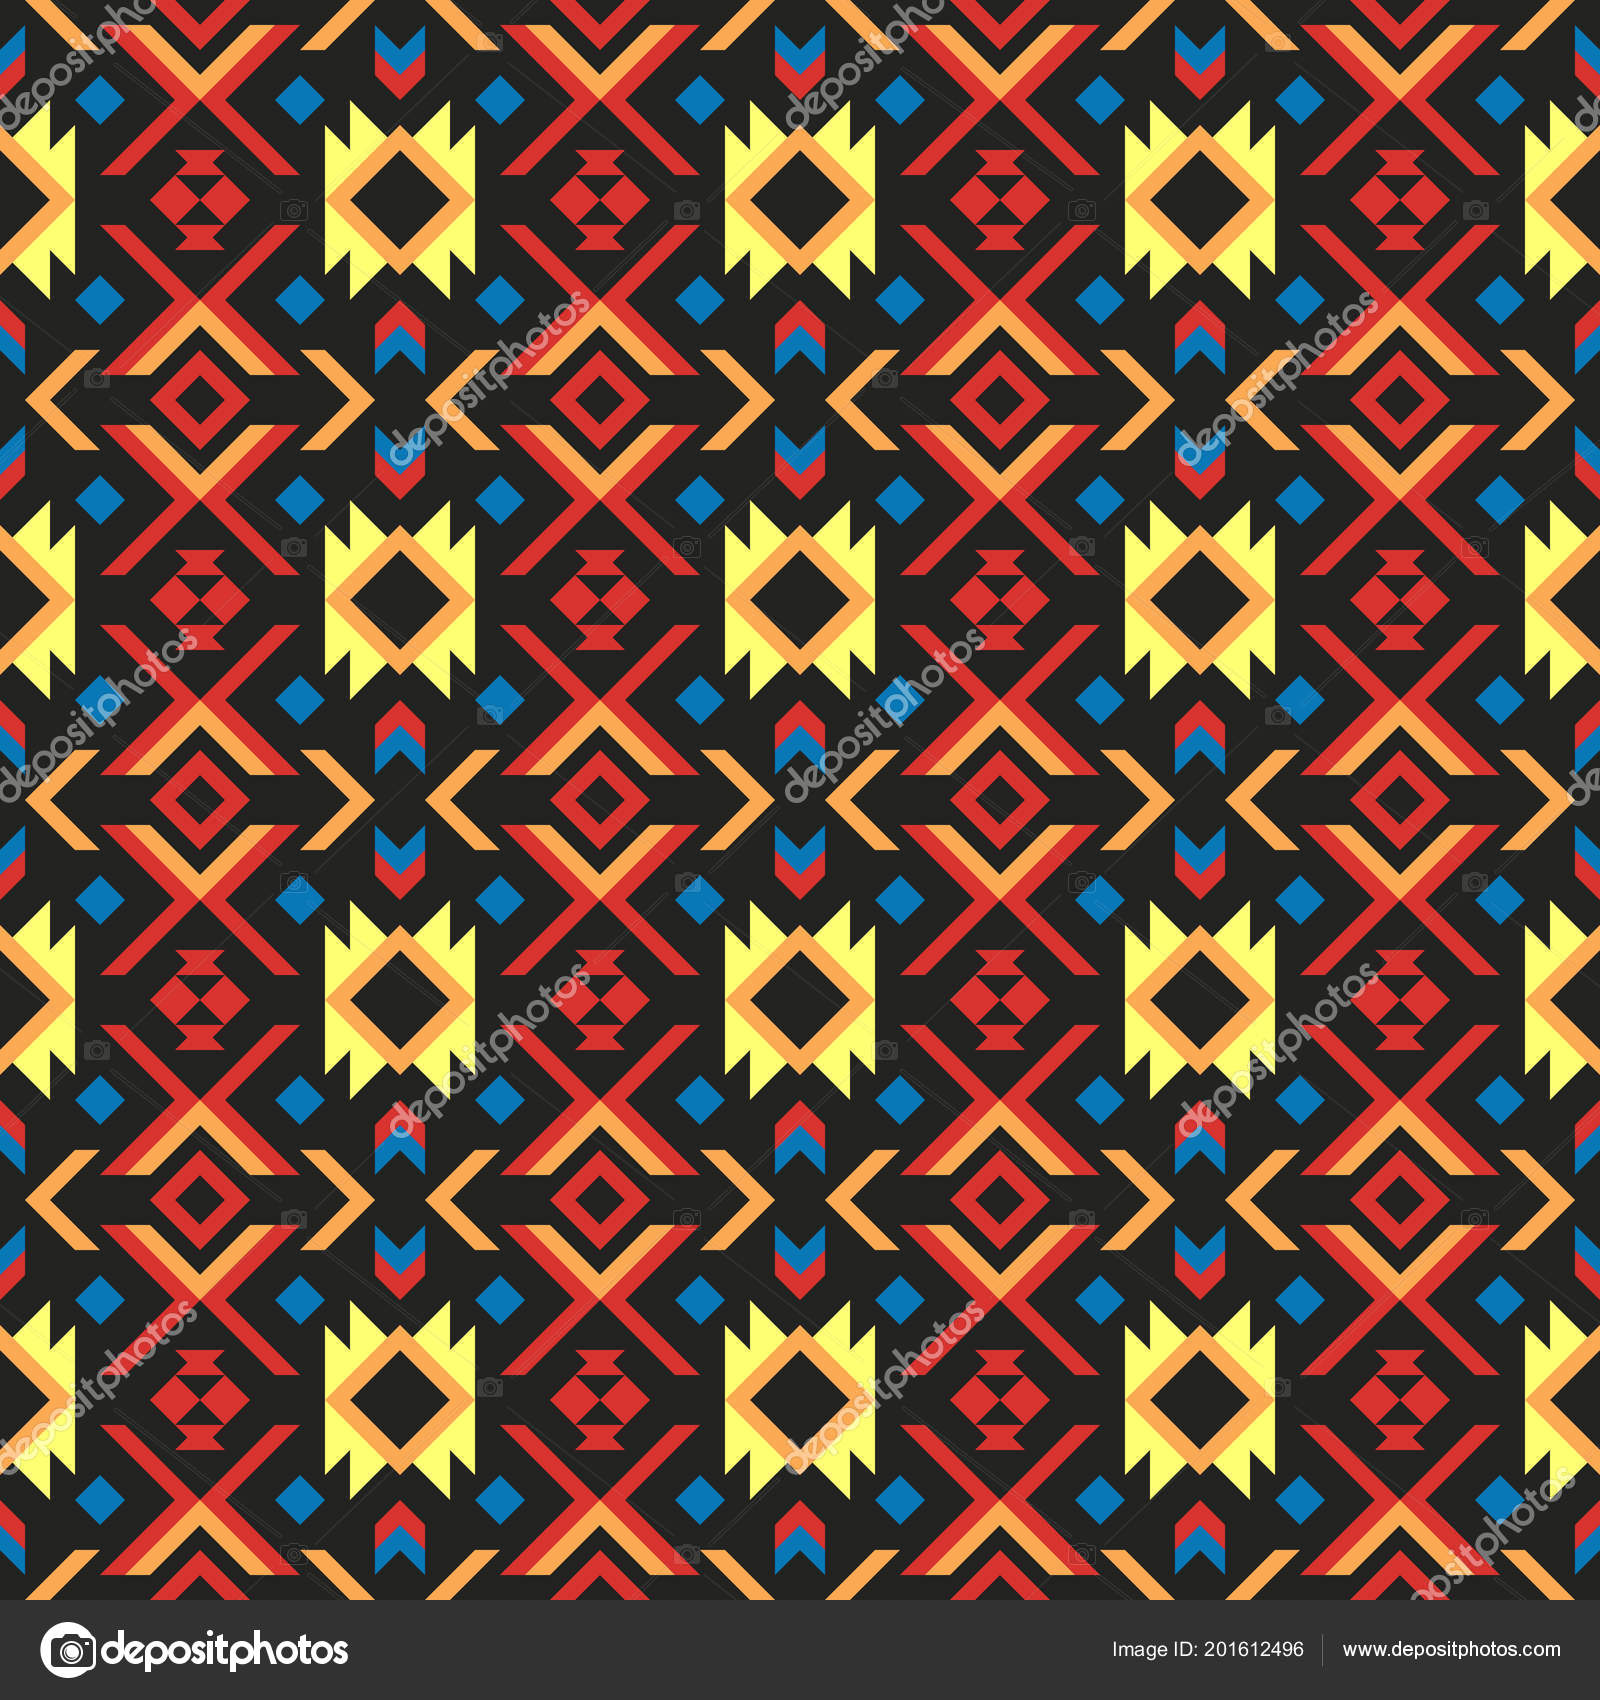 Abstract Ethnic Geometric Pattern Design Background Wallpaper